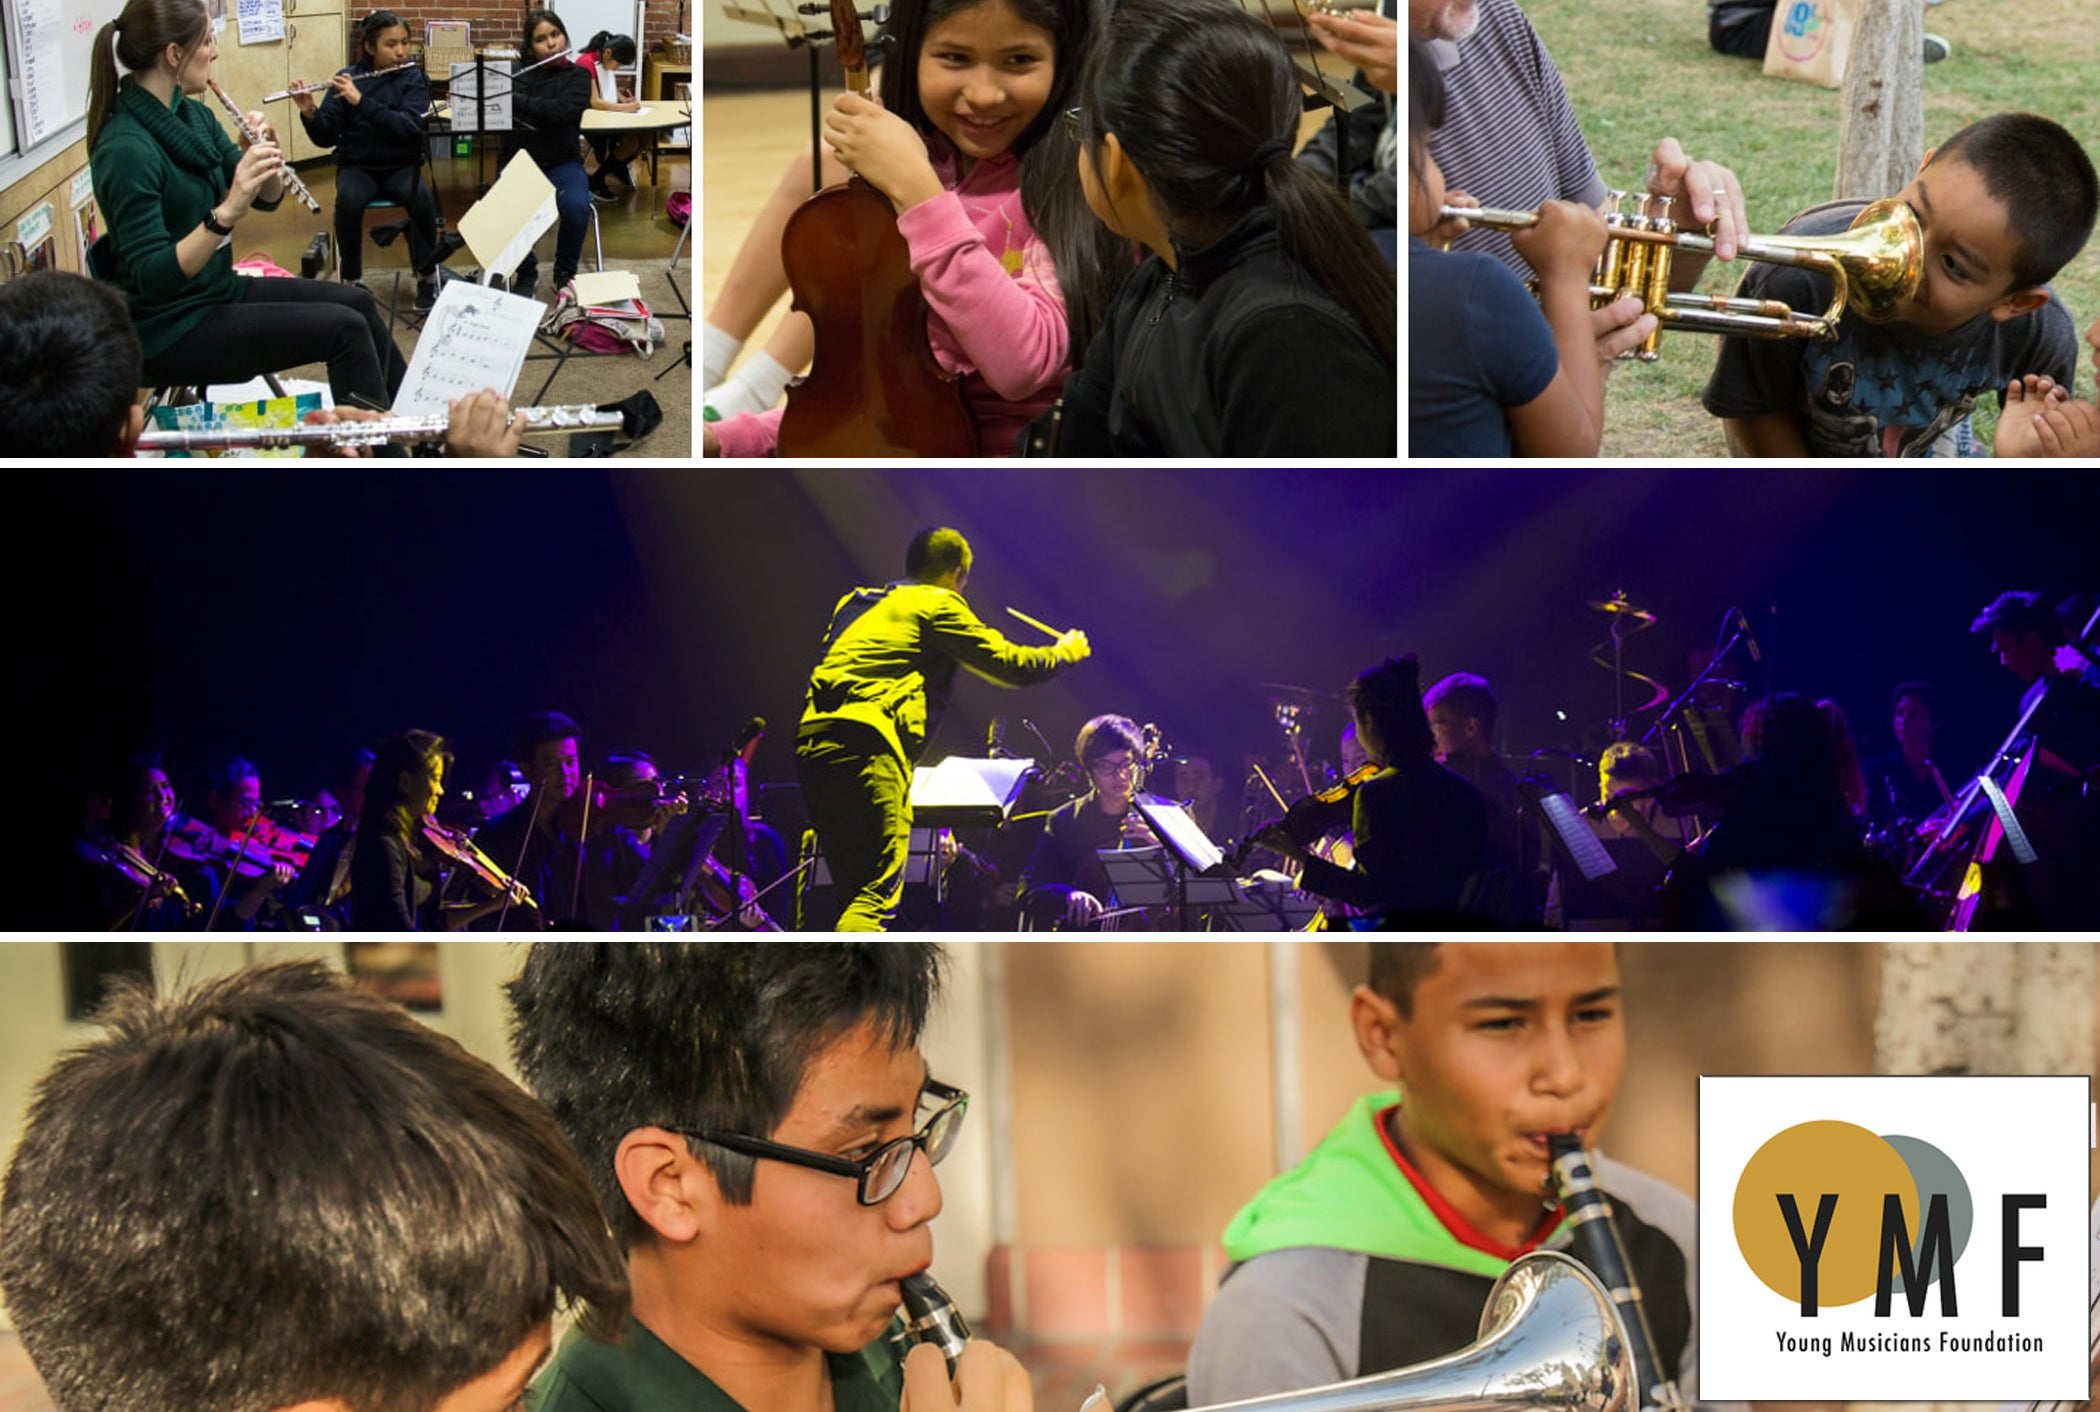 Young Musicians Foundation (YMF)